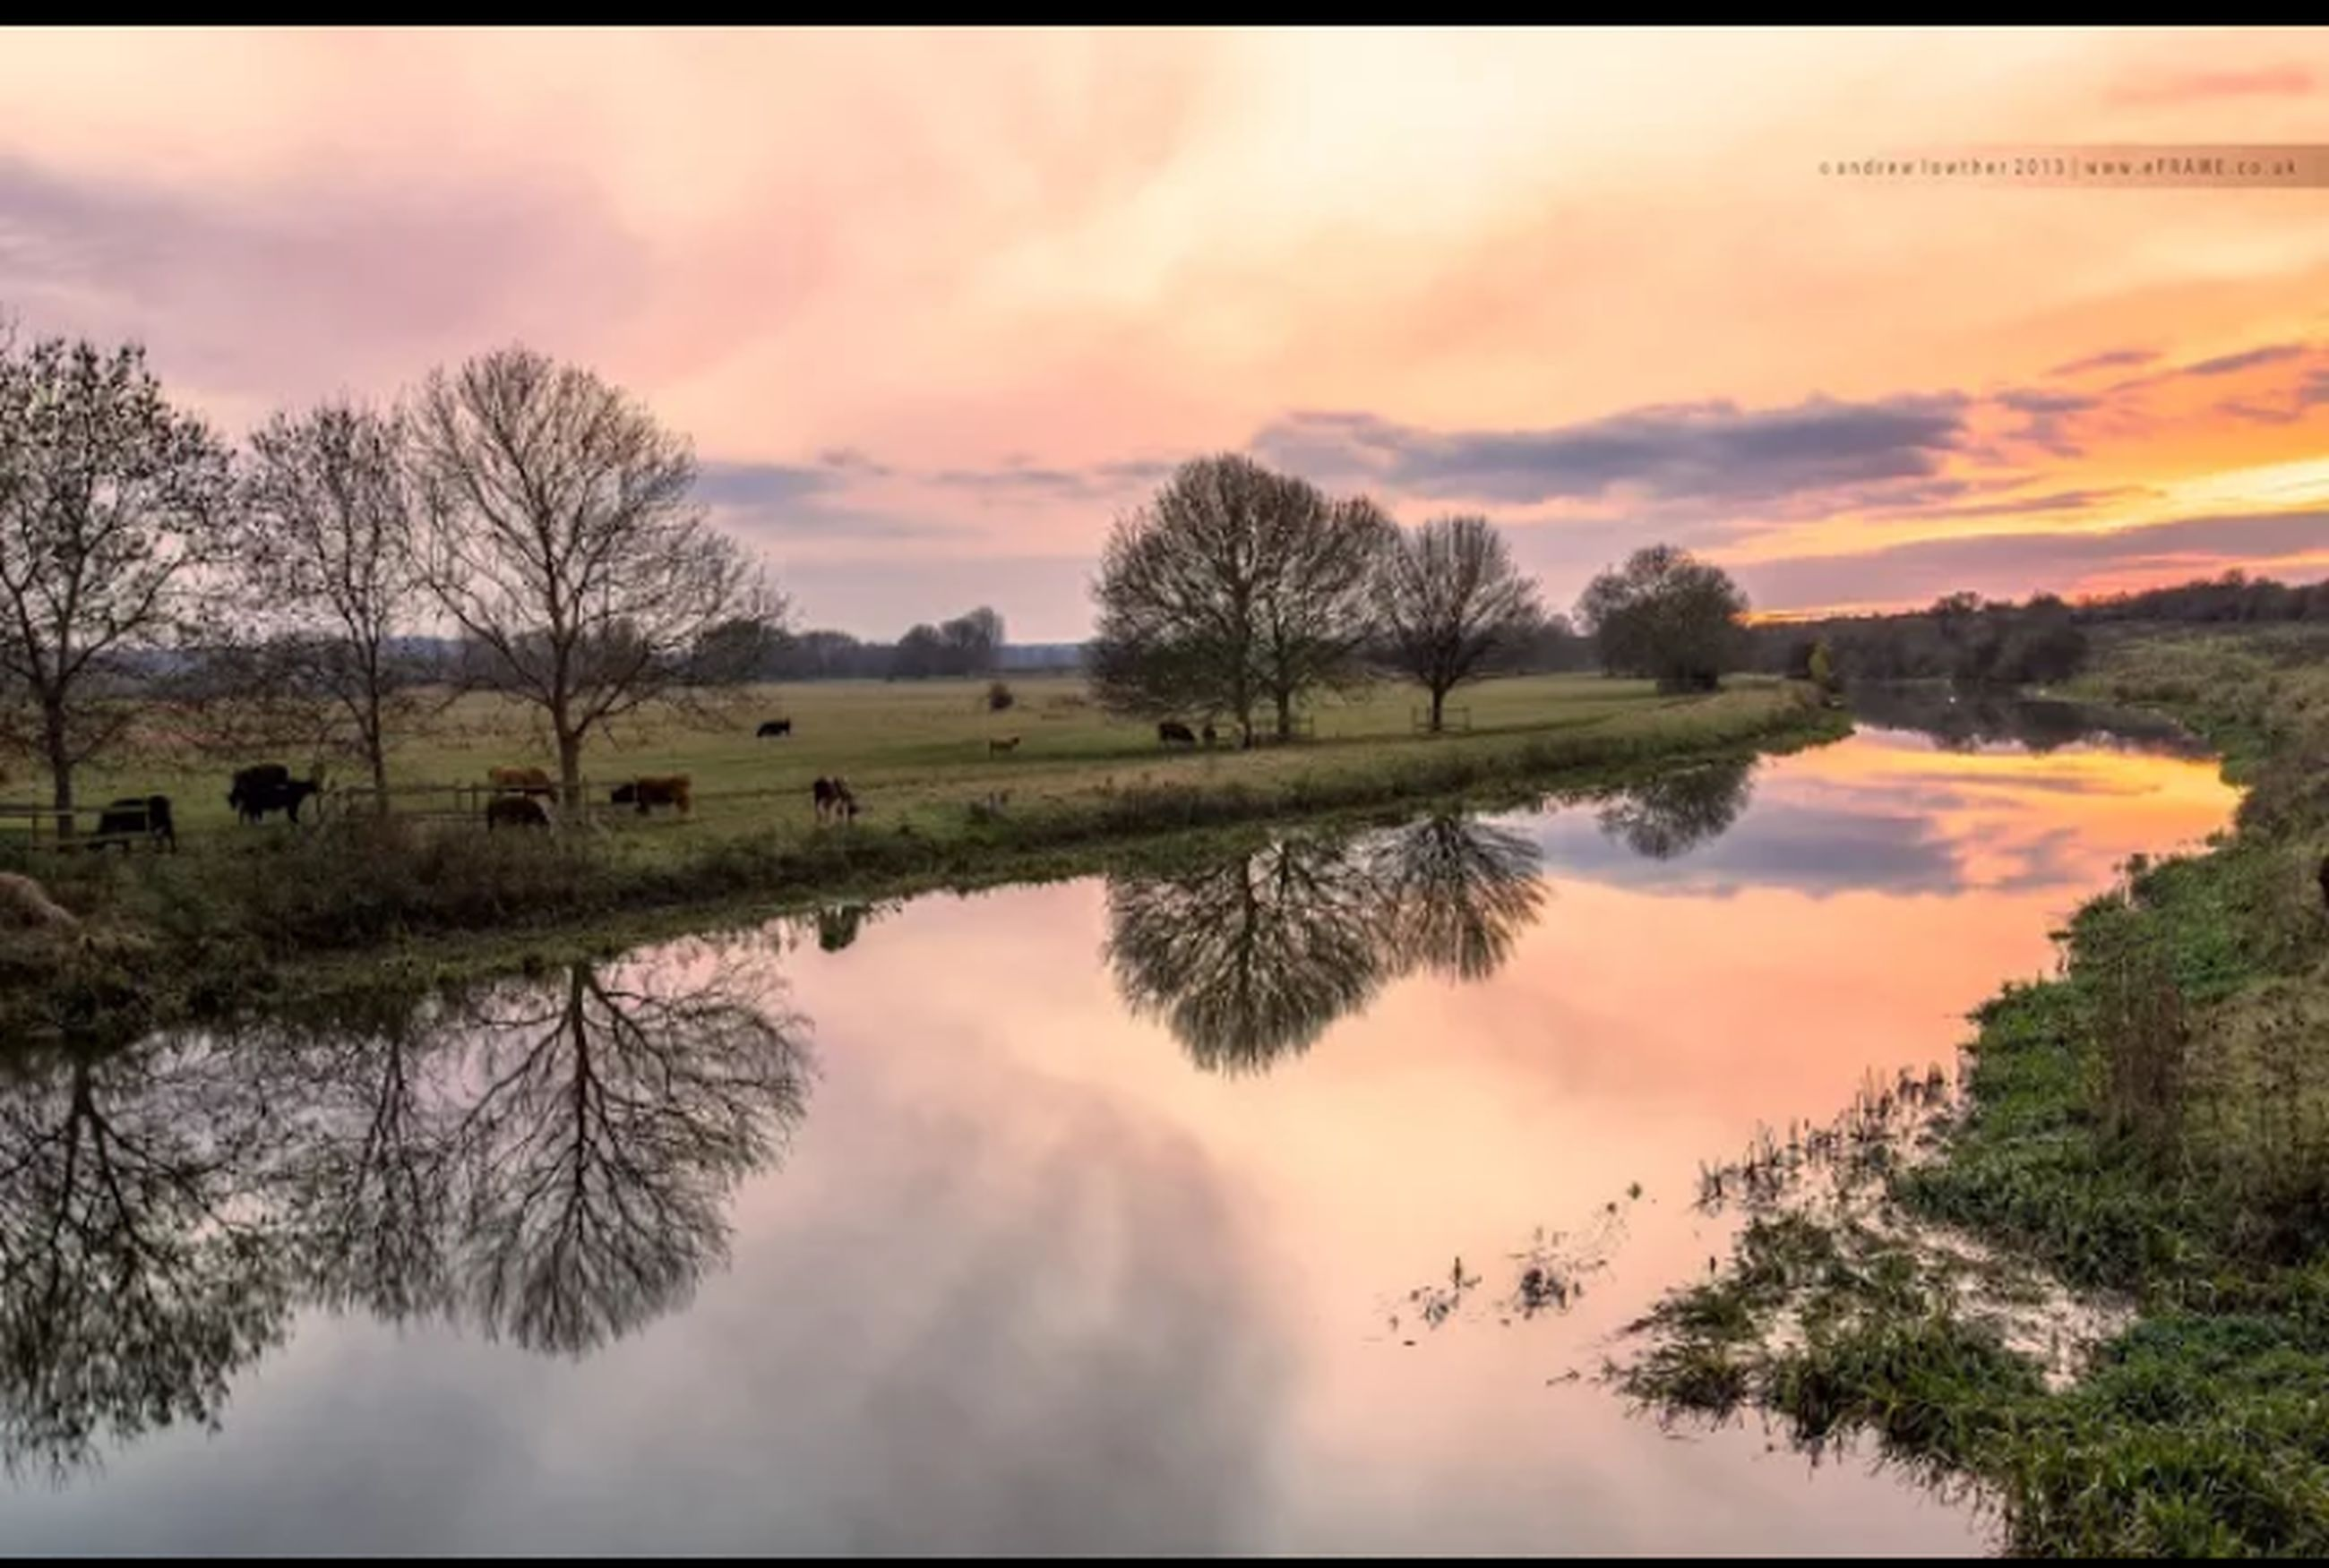 reflection, tranquil scene, sunset, sky, tranquility, scenics, lake, tree, water, beauty in nature, cloud - sky, nature, landscape, idyllic, cloudy, cloud, grass, standing water, waterfront, non-urban scene